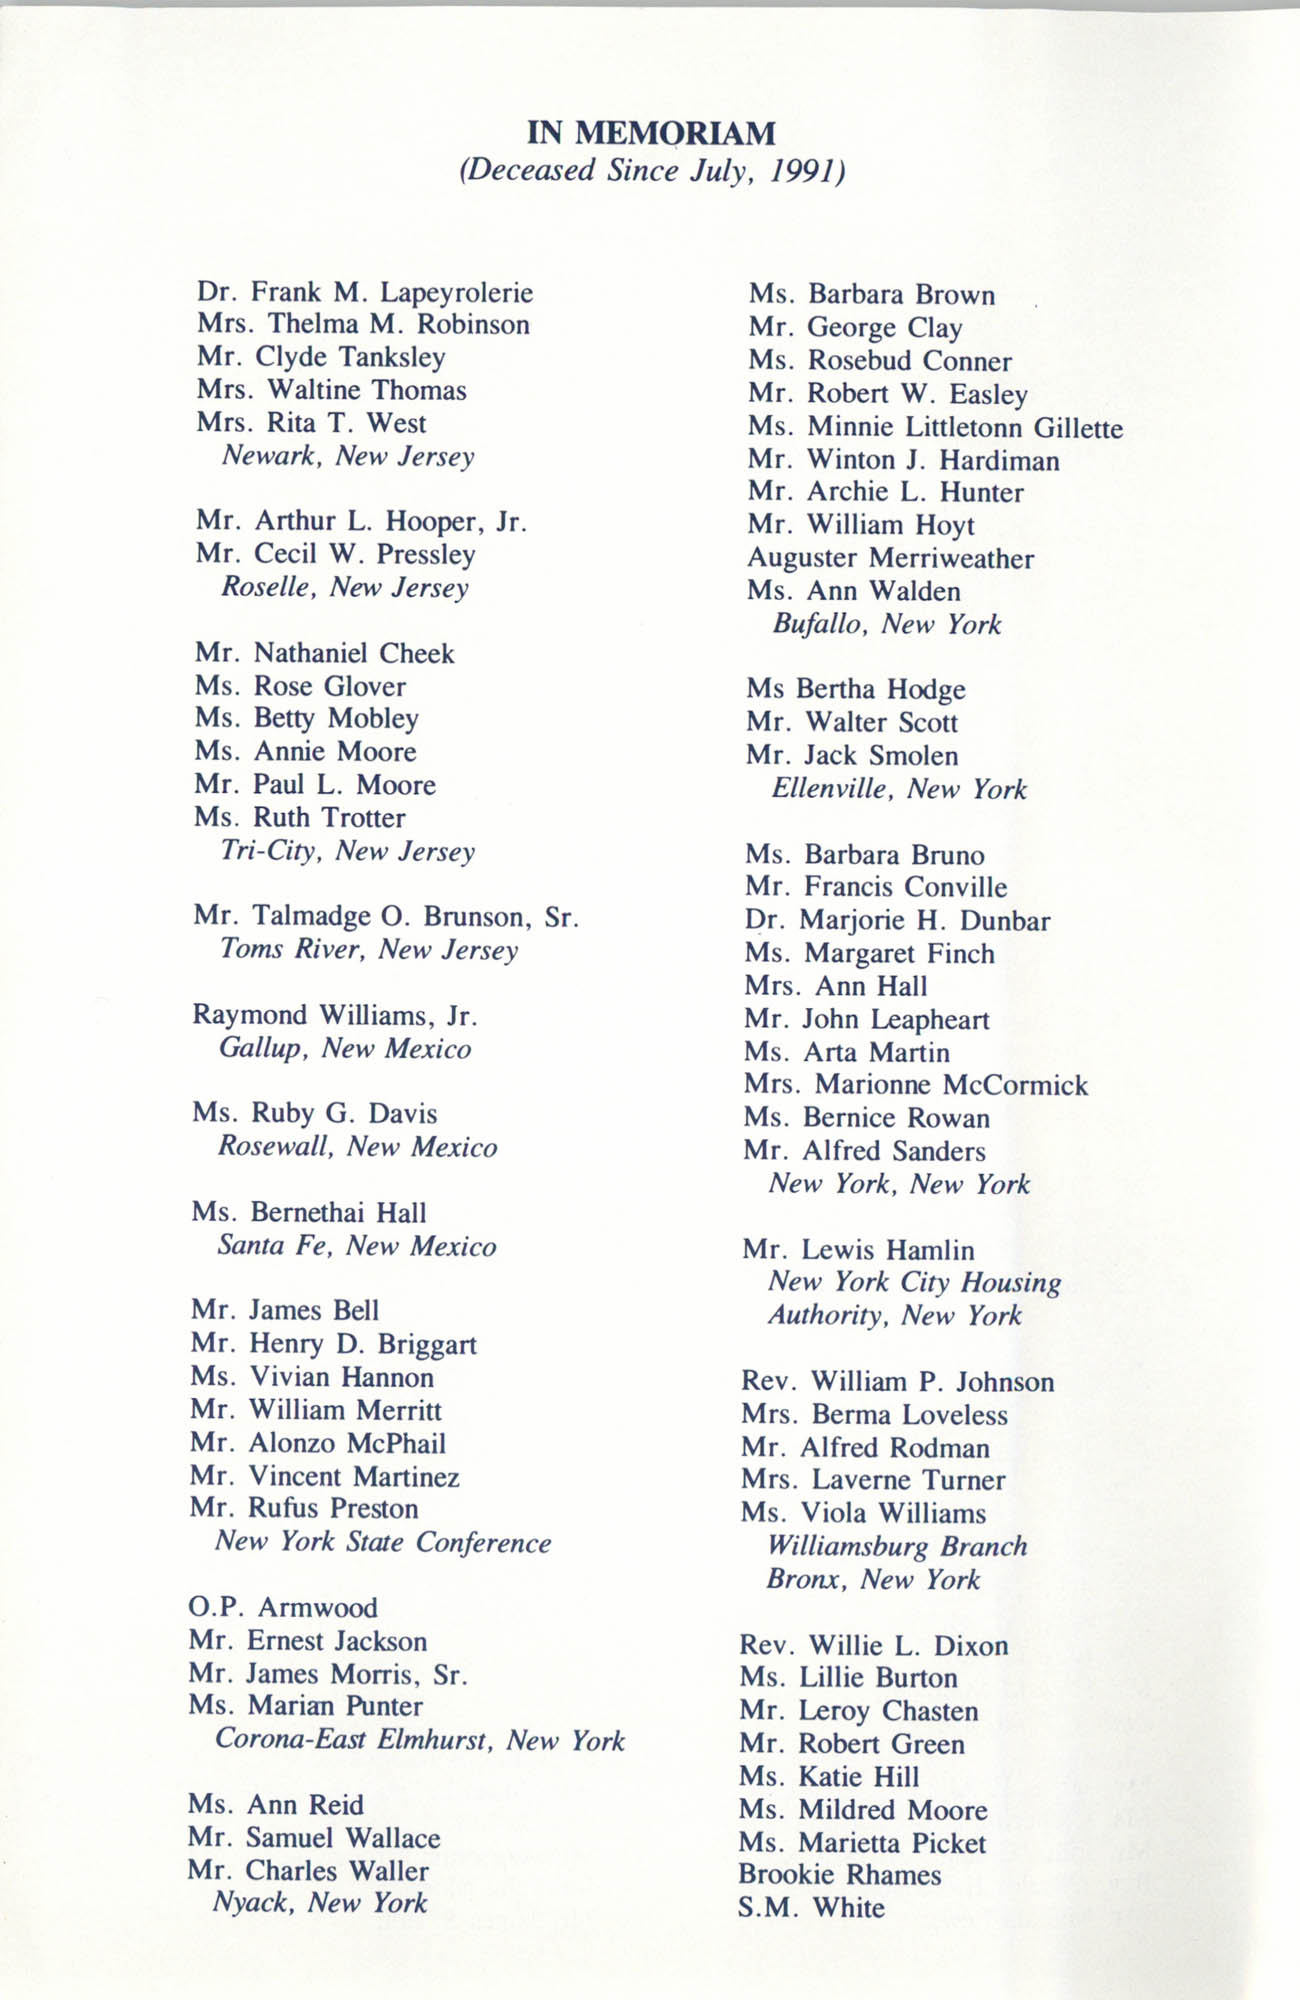 Memorial Service in Tribute to Deceased NAACP Officers and Member, July 12, 1992, Page 7